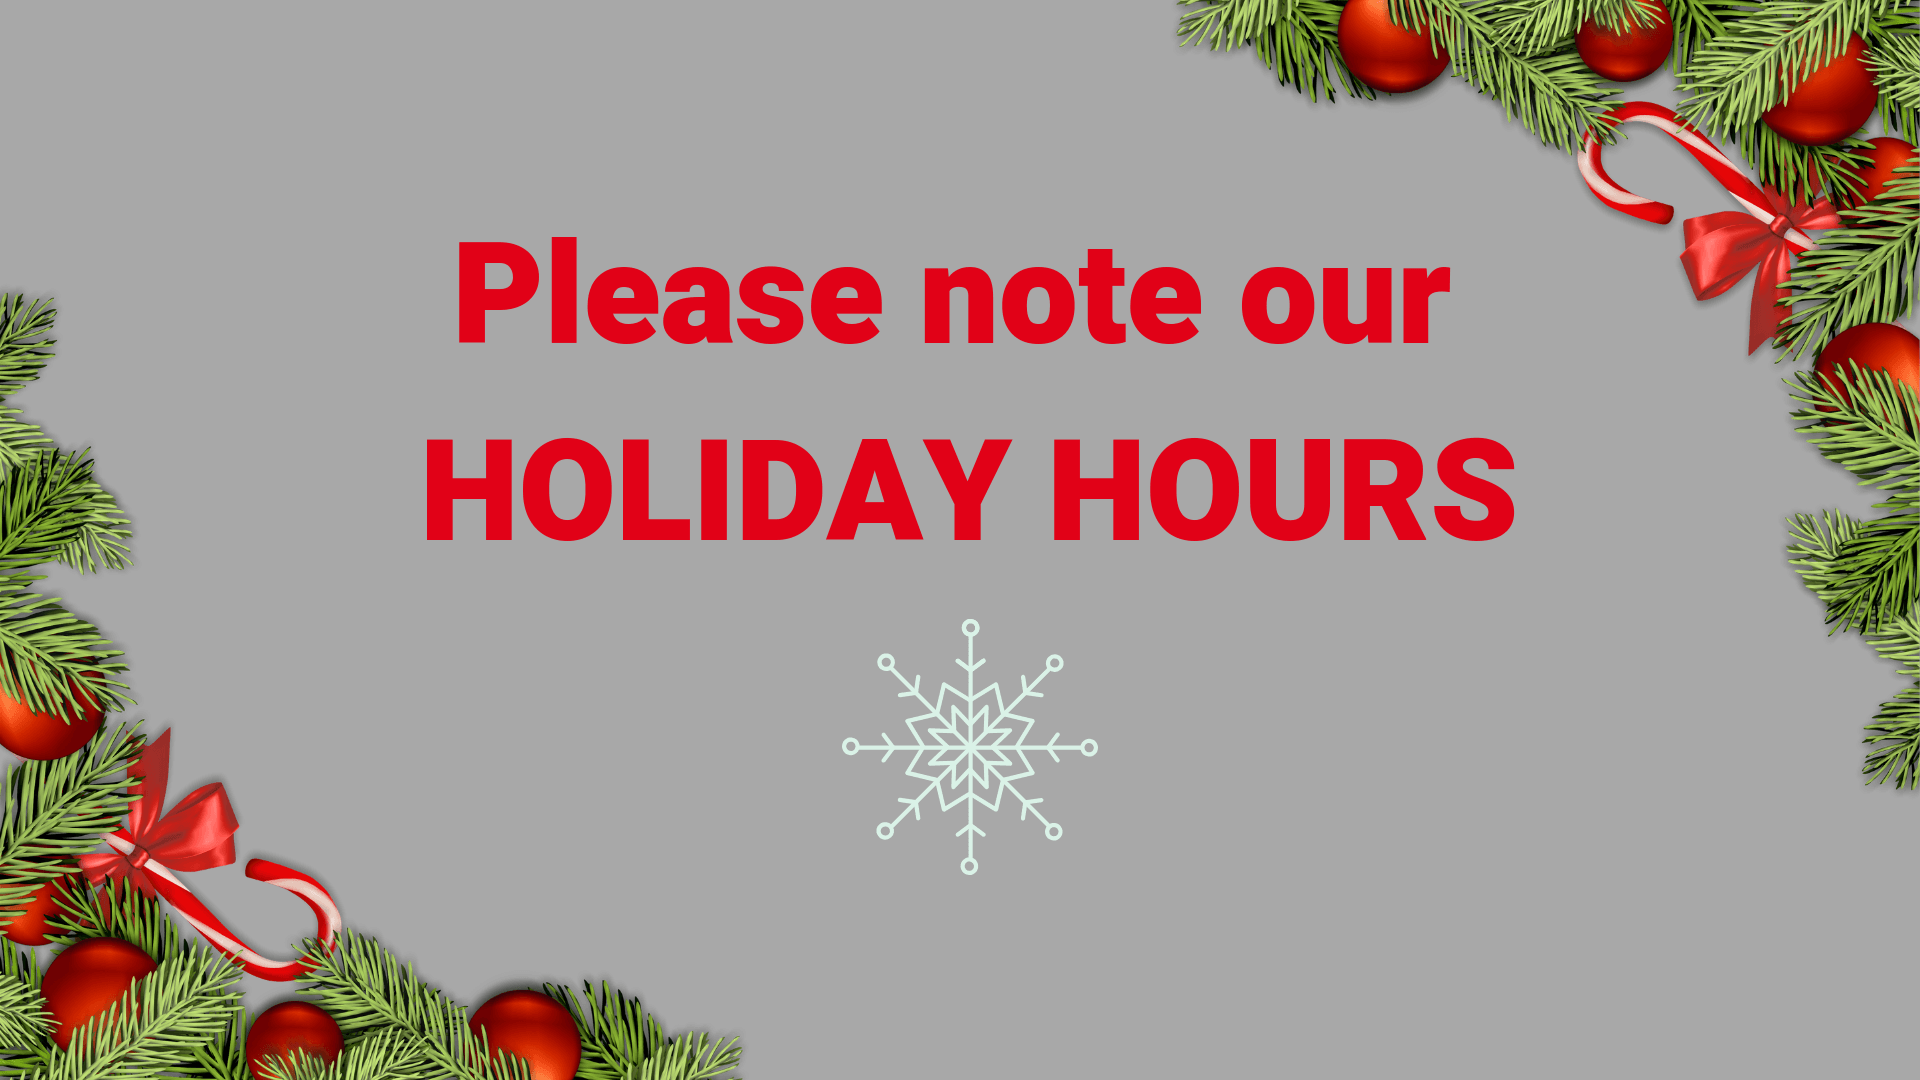 Please note our HOLIDAY HOURS